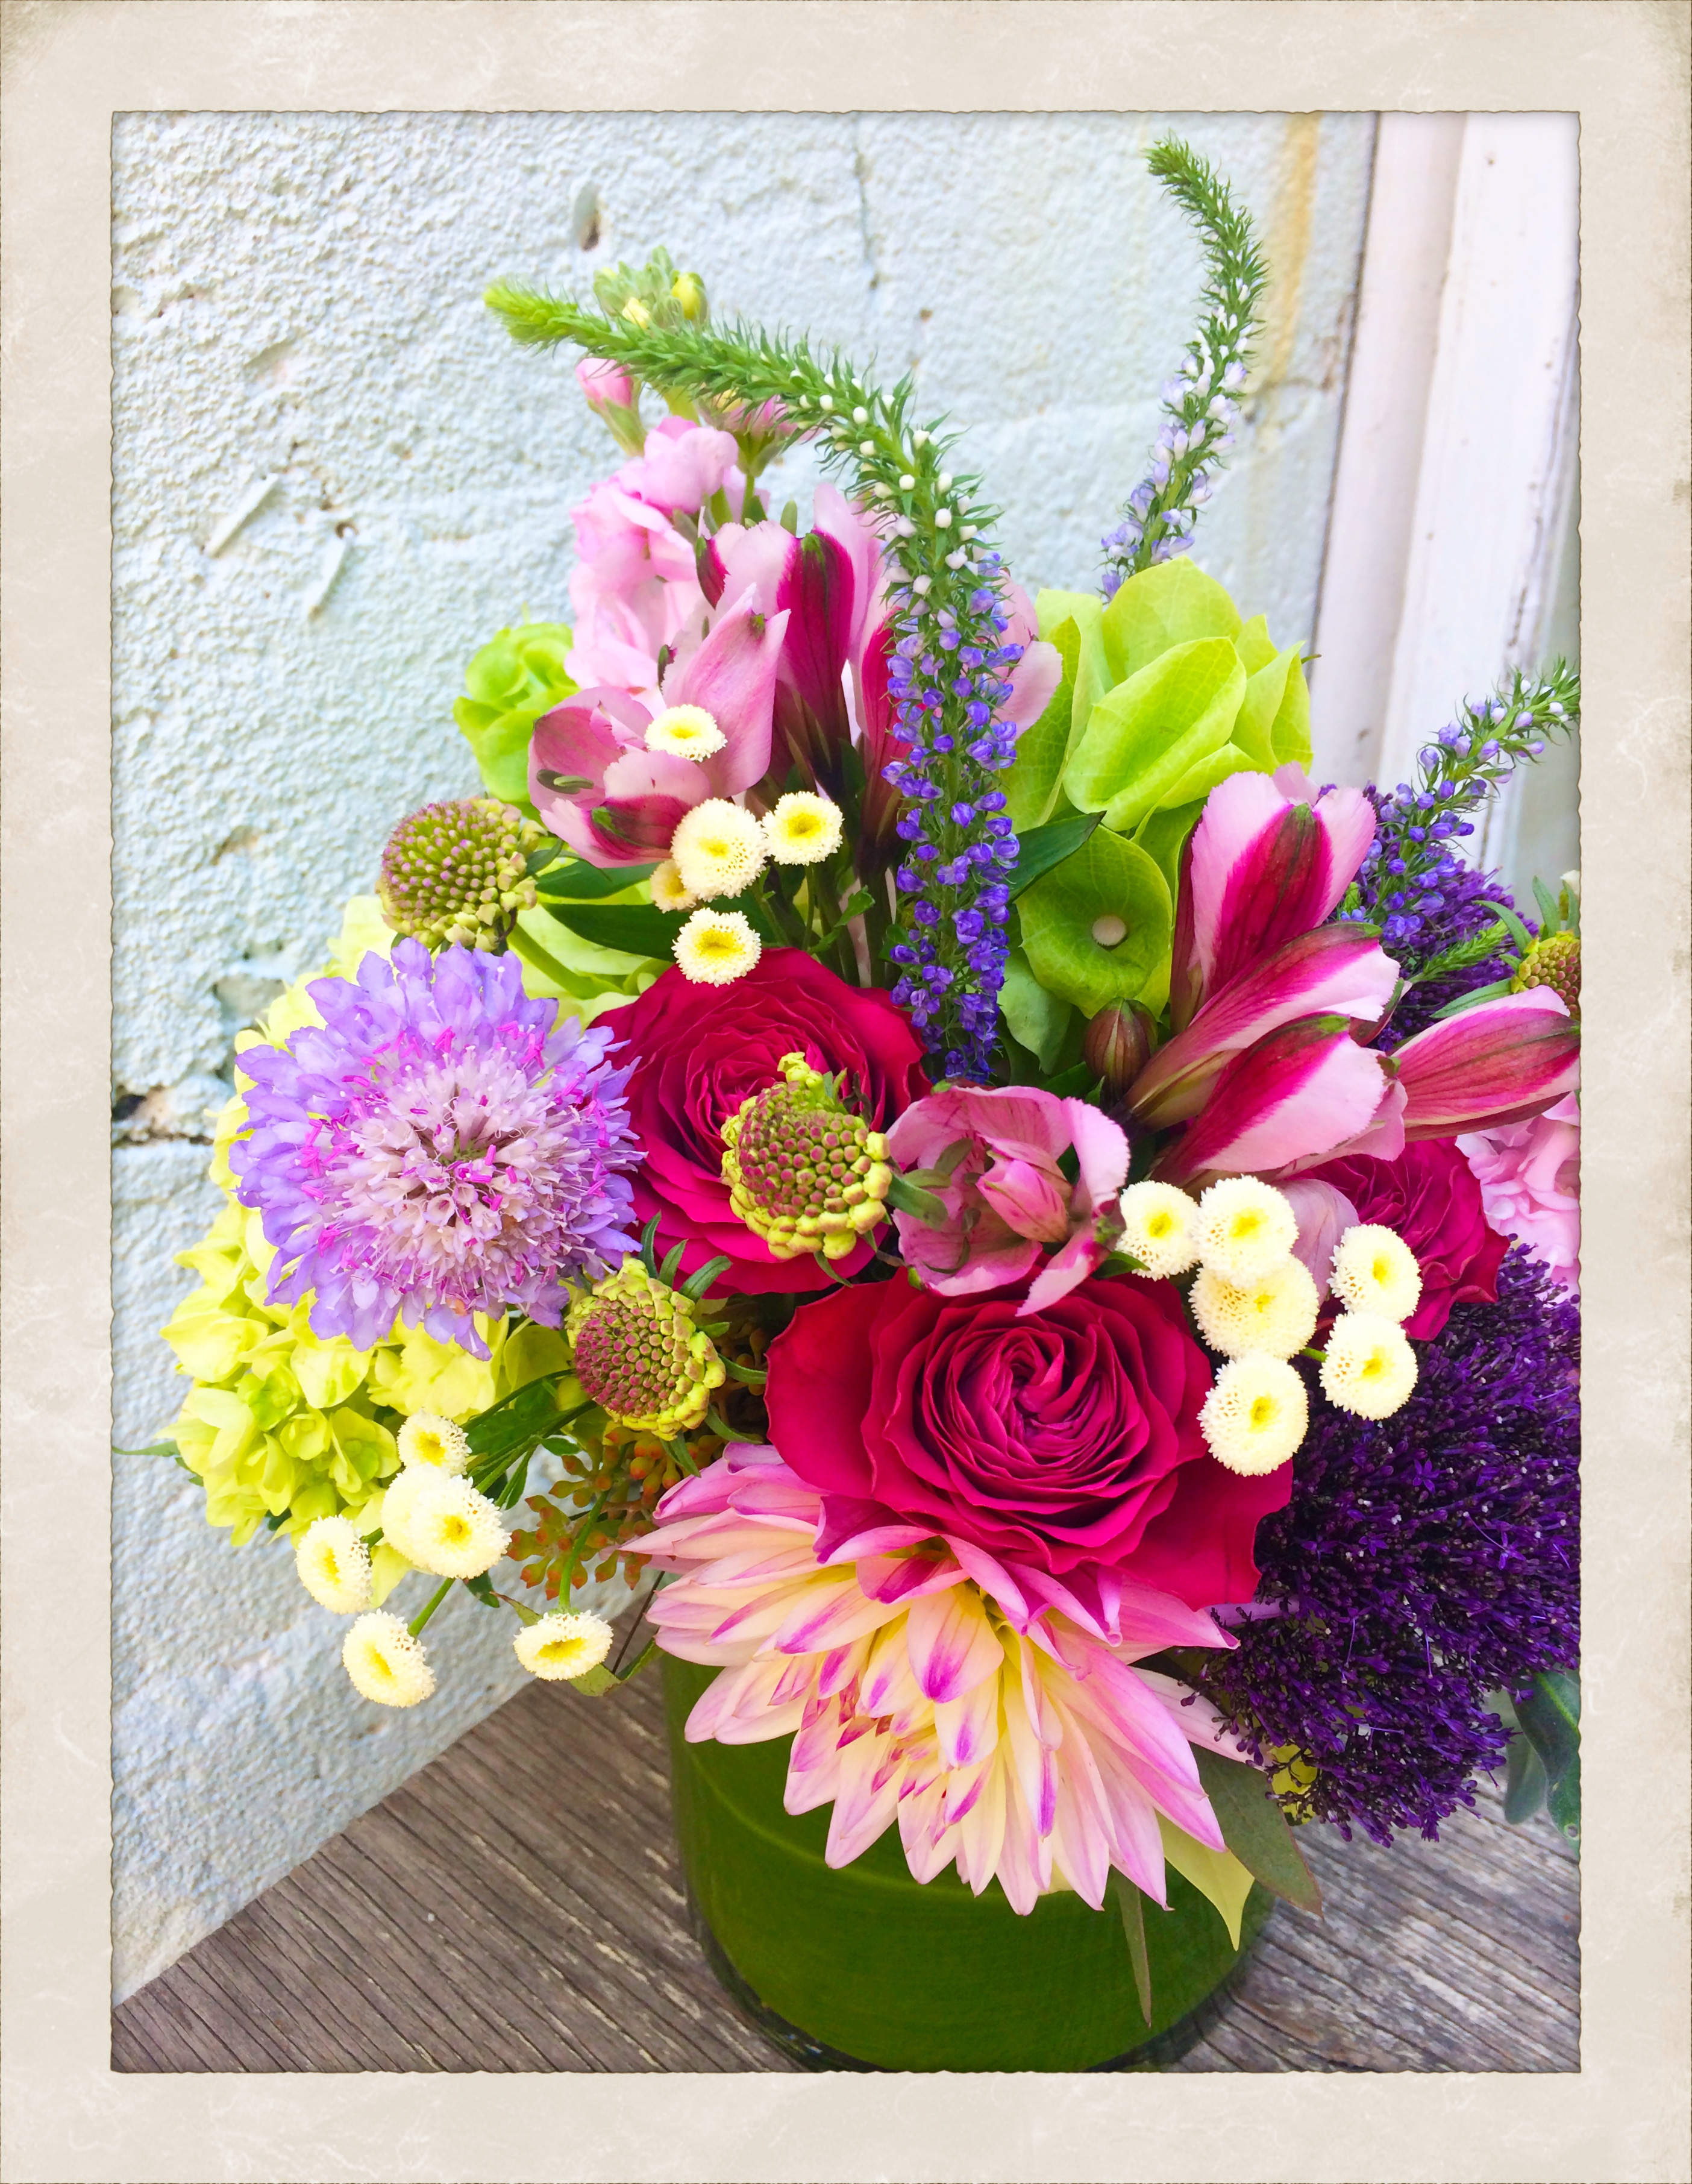 Florabella florist san diego flower shop san diego flower florabella is a full service flower shop serving all of san diego county with fresh daily floral delivery and weekly floral services for over 25 years izmirmasajfo